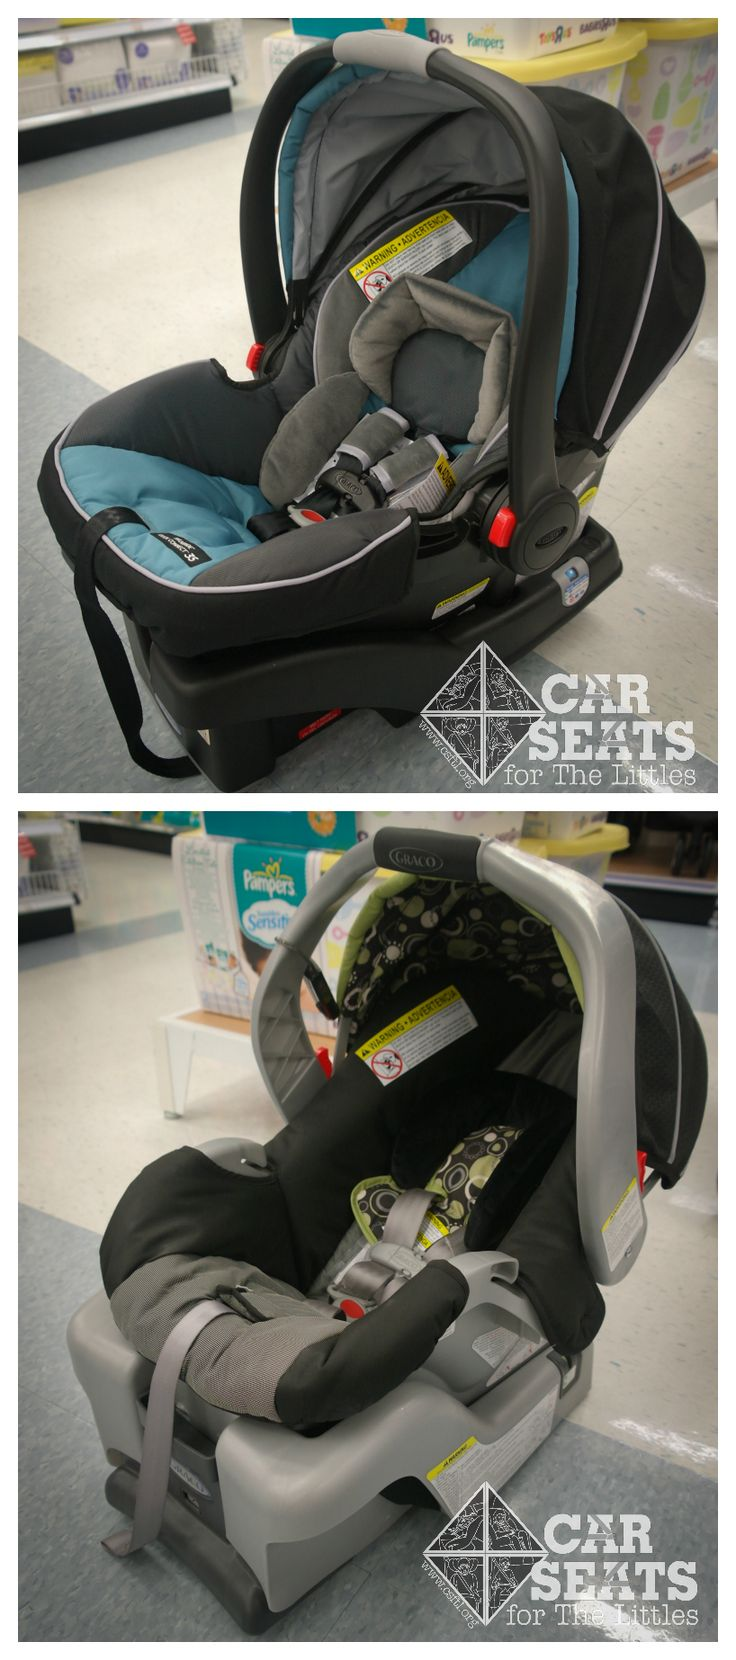 The ultimate car seat guide for new parents car seats for the littles